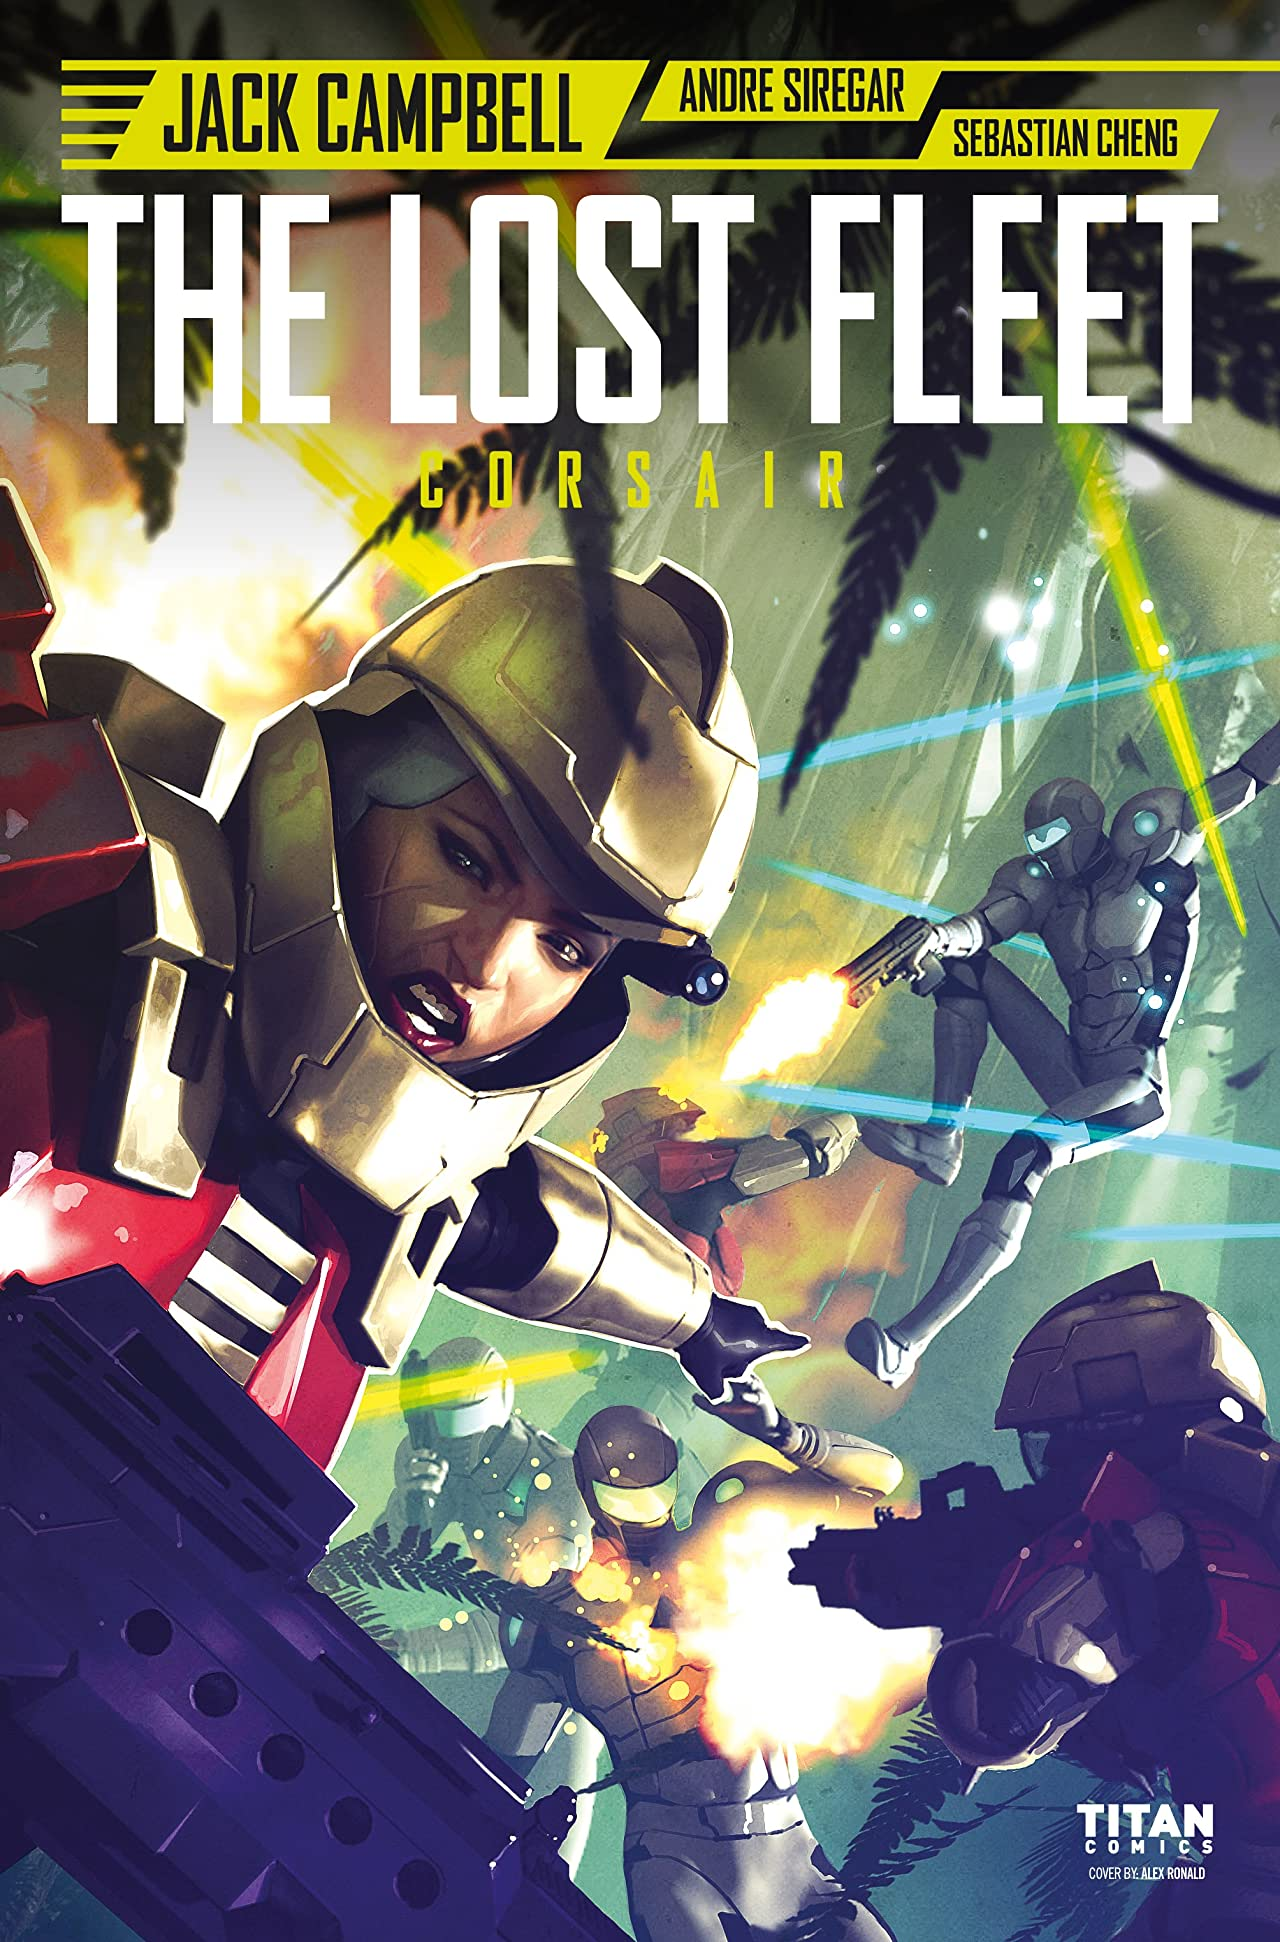 The Lost Fleet: Corsair #5